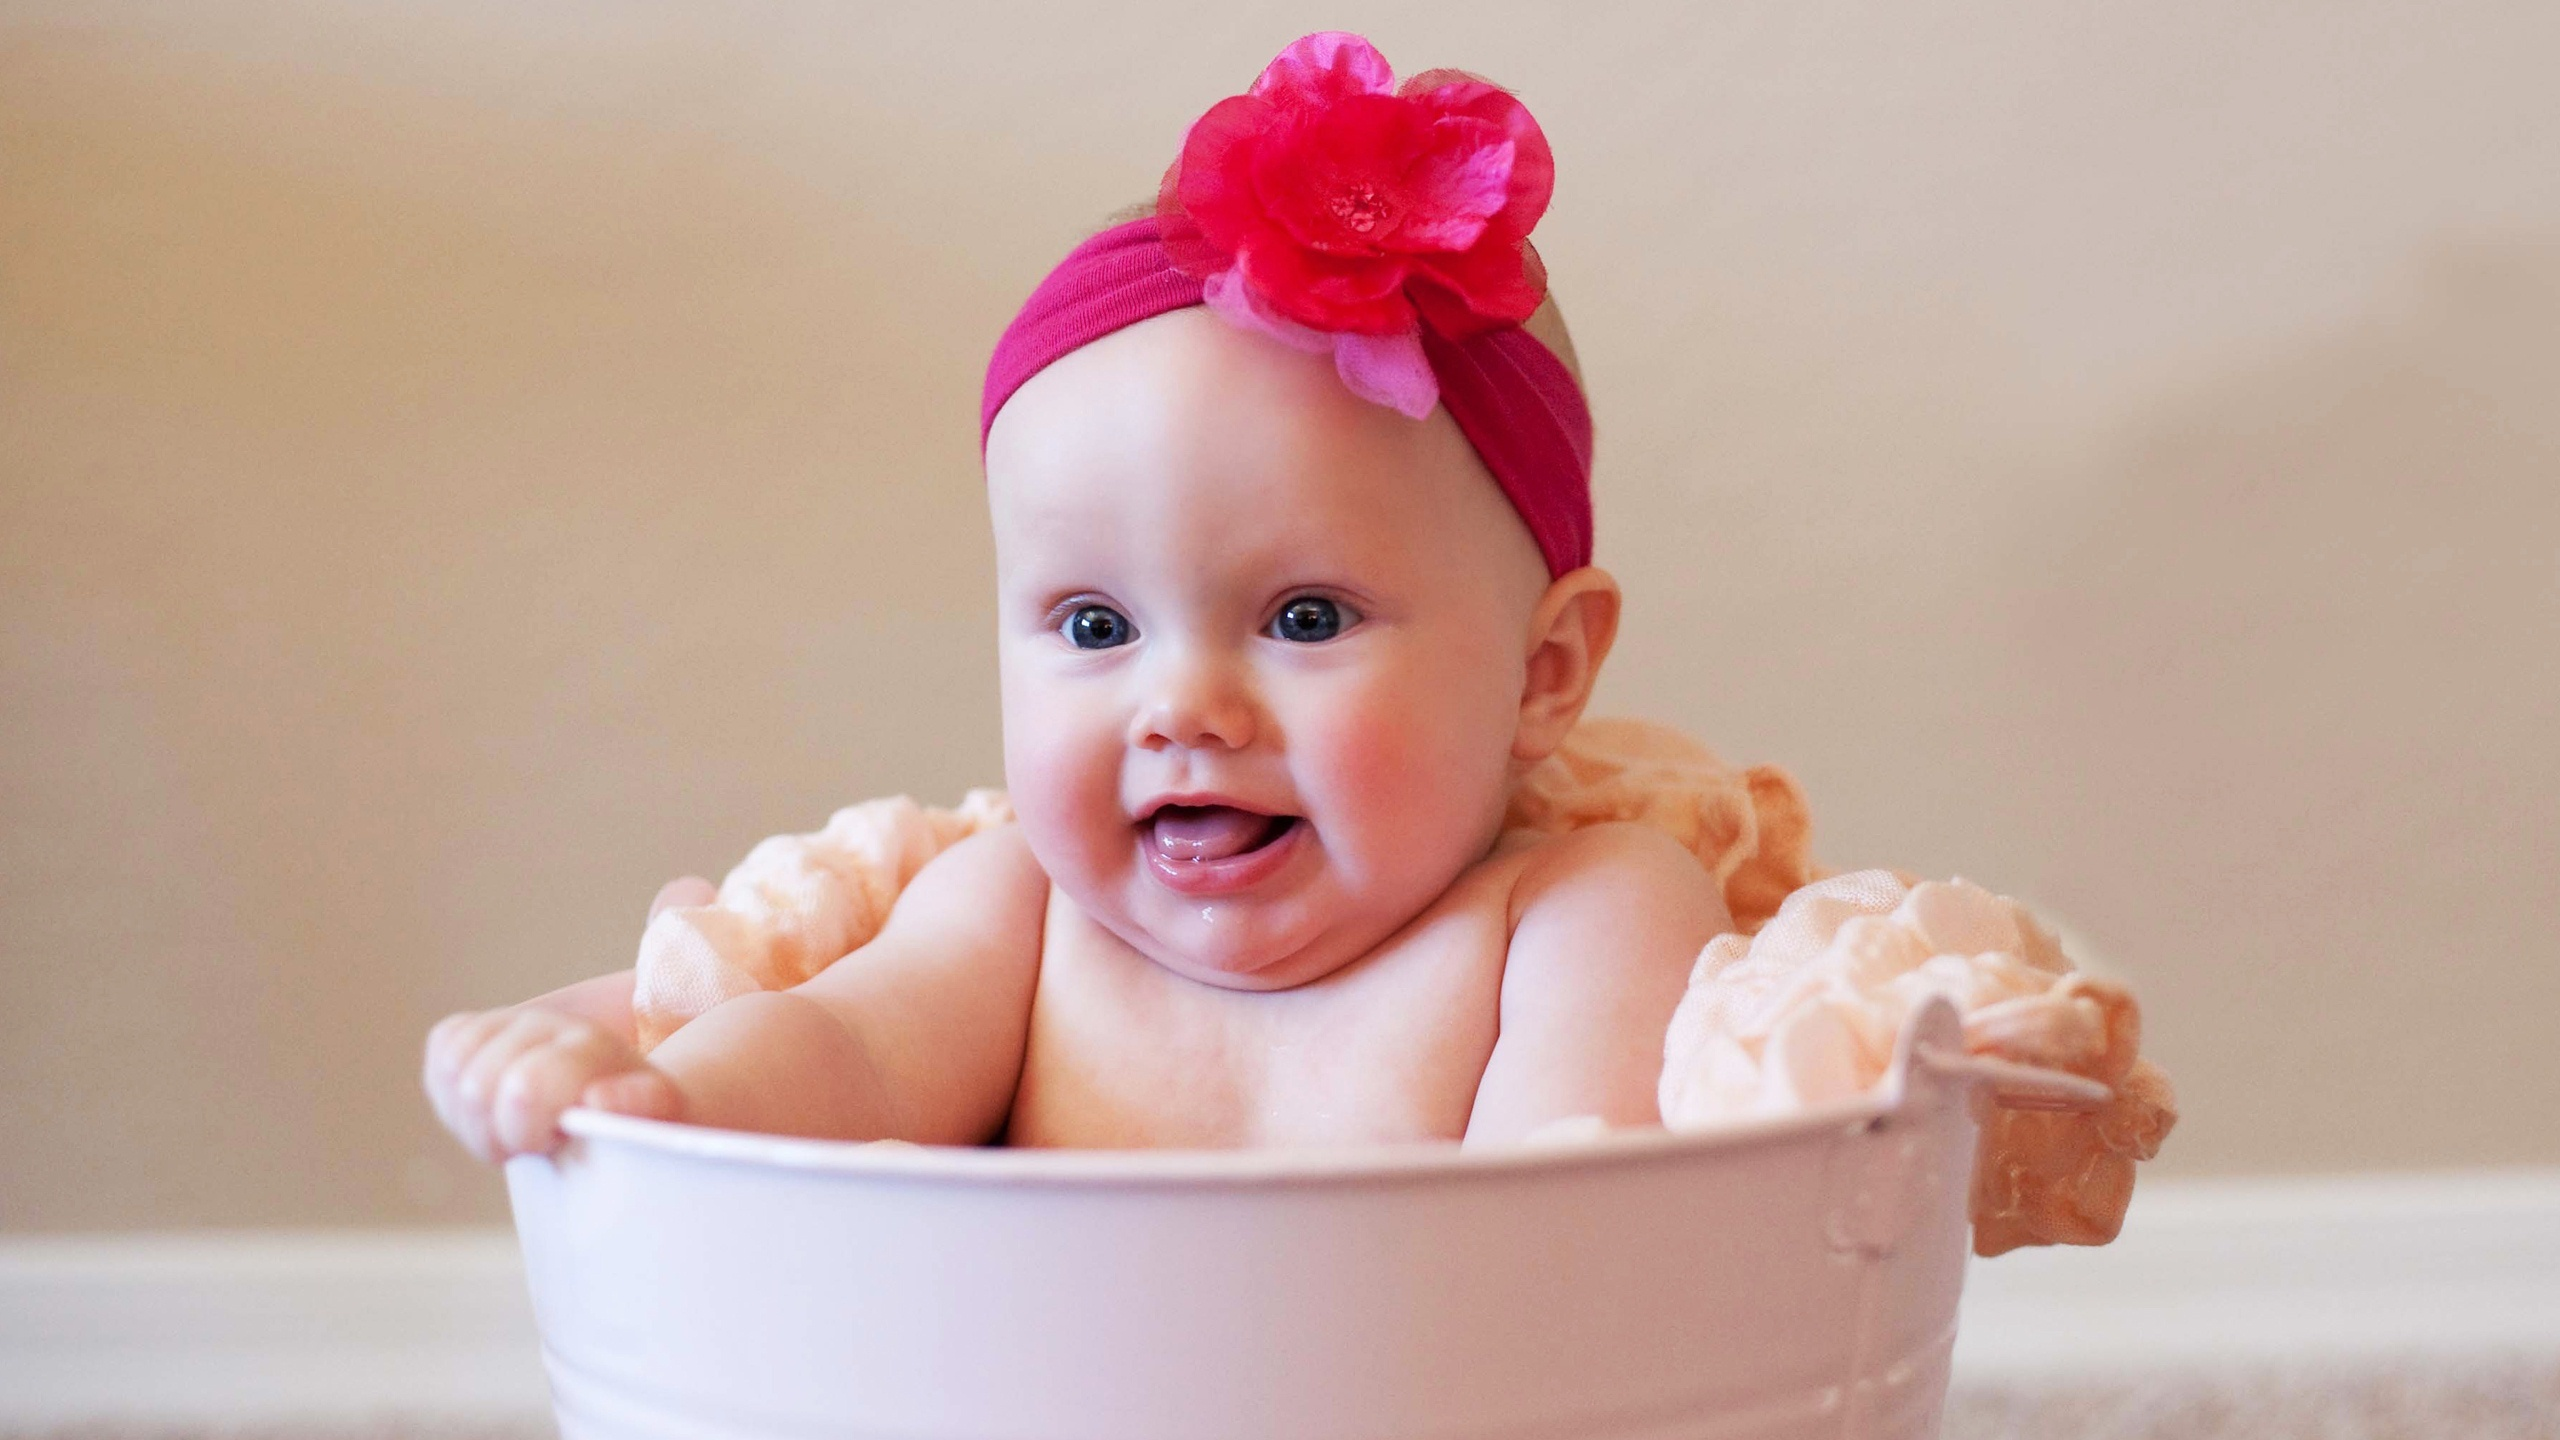 cutest baby girl wallpapers in jpg format for free download